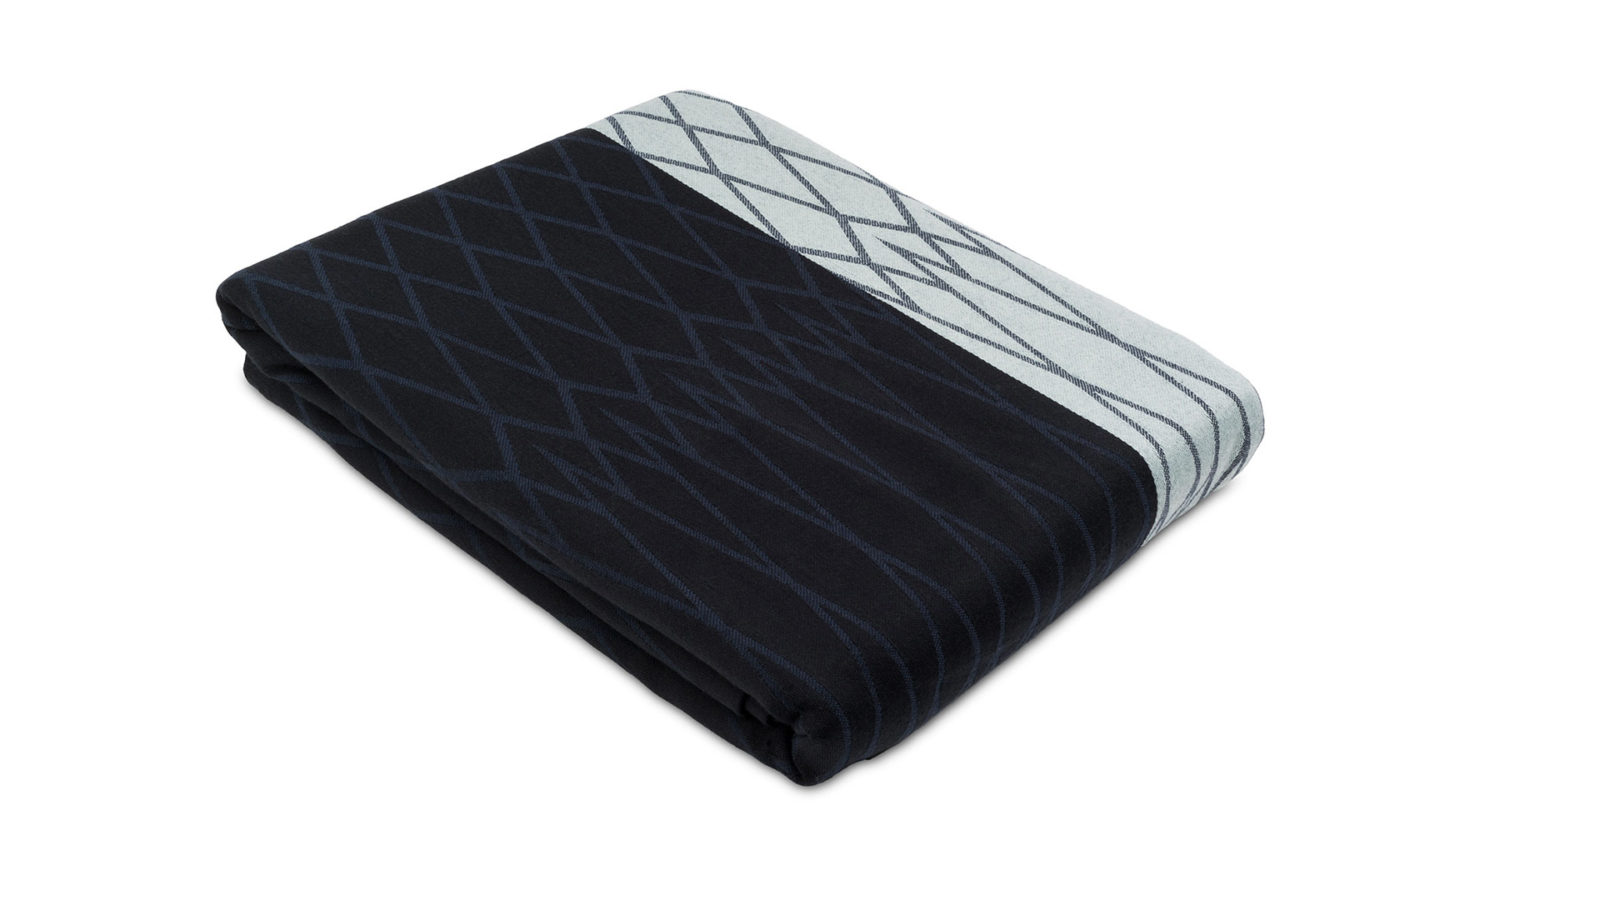 100% organic cotton bedspread in navy and aqua woven pattern